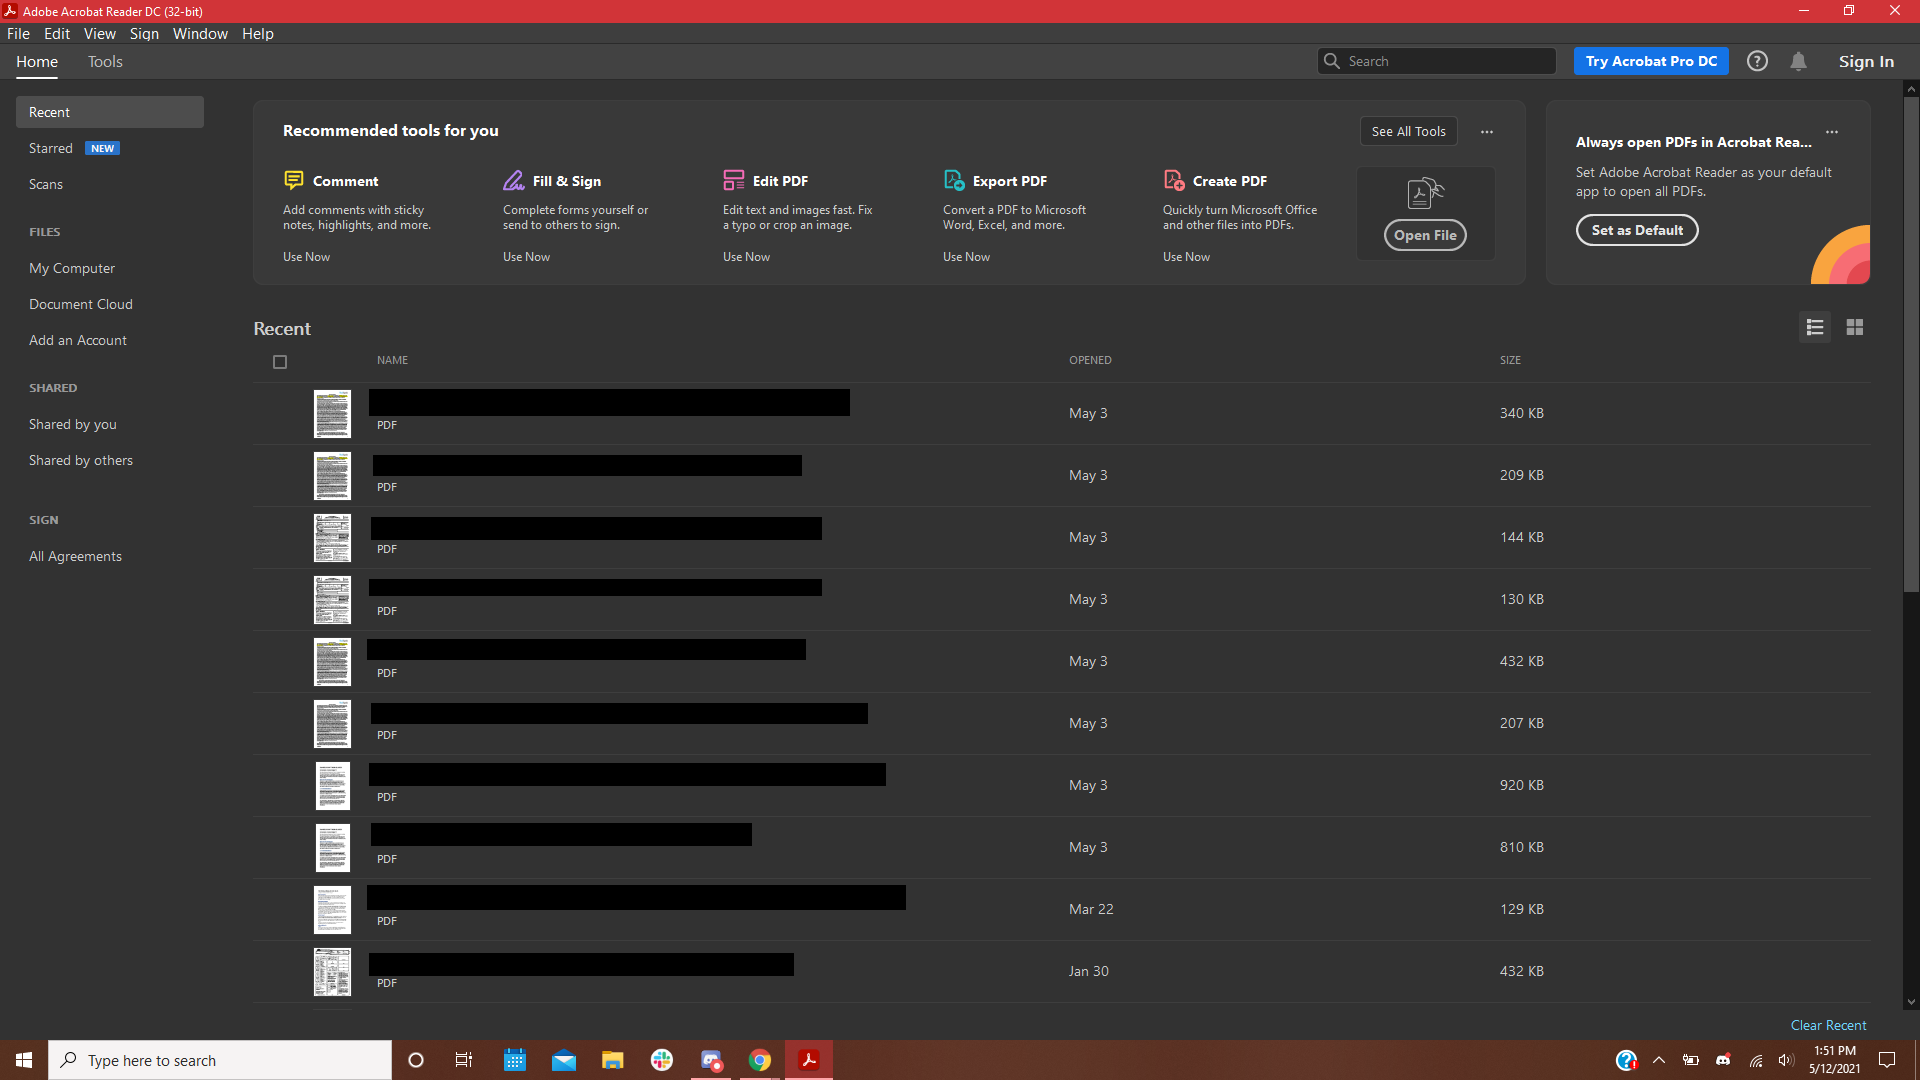 A screenshot of the Adobe Acrobat homescreen, displaying various options for opening and editing documents.